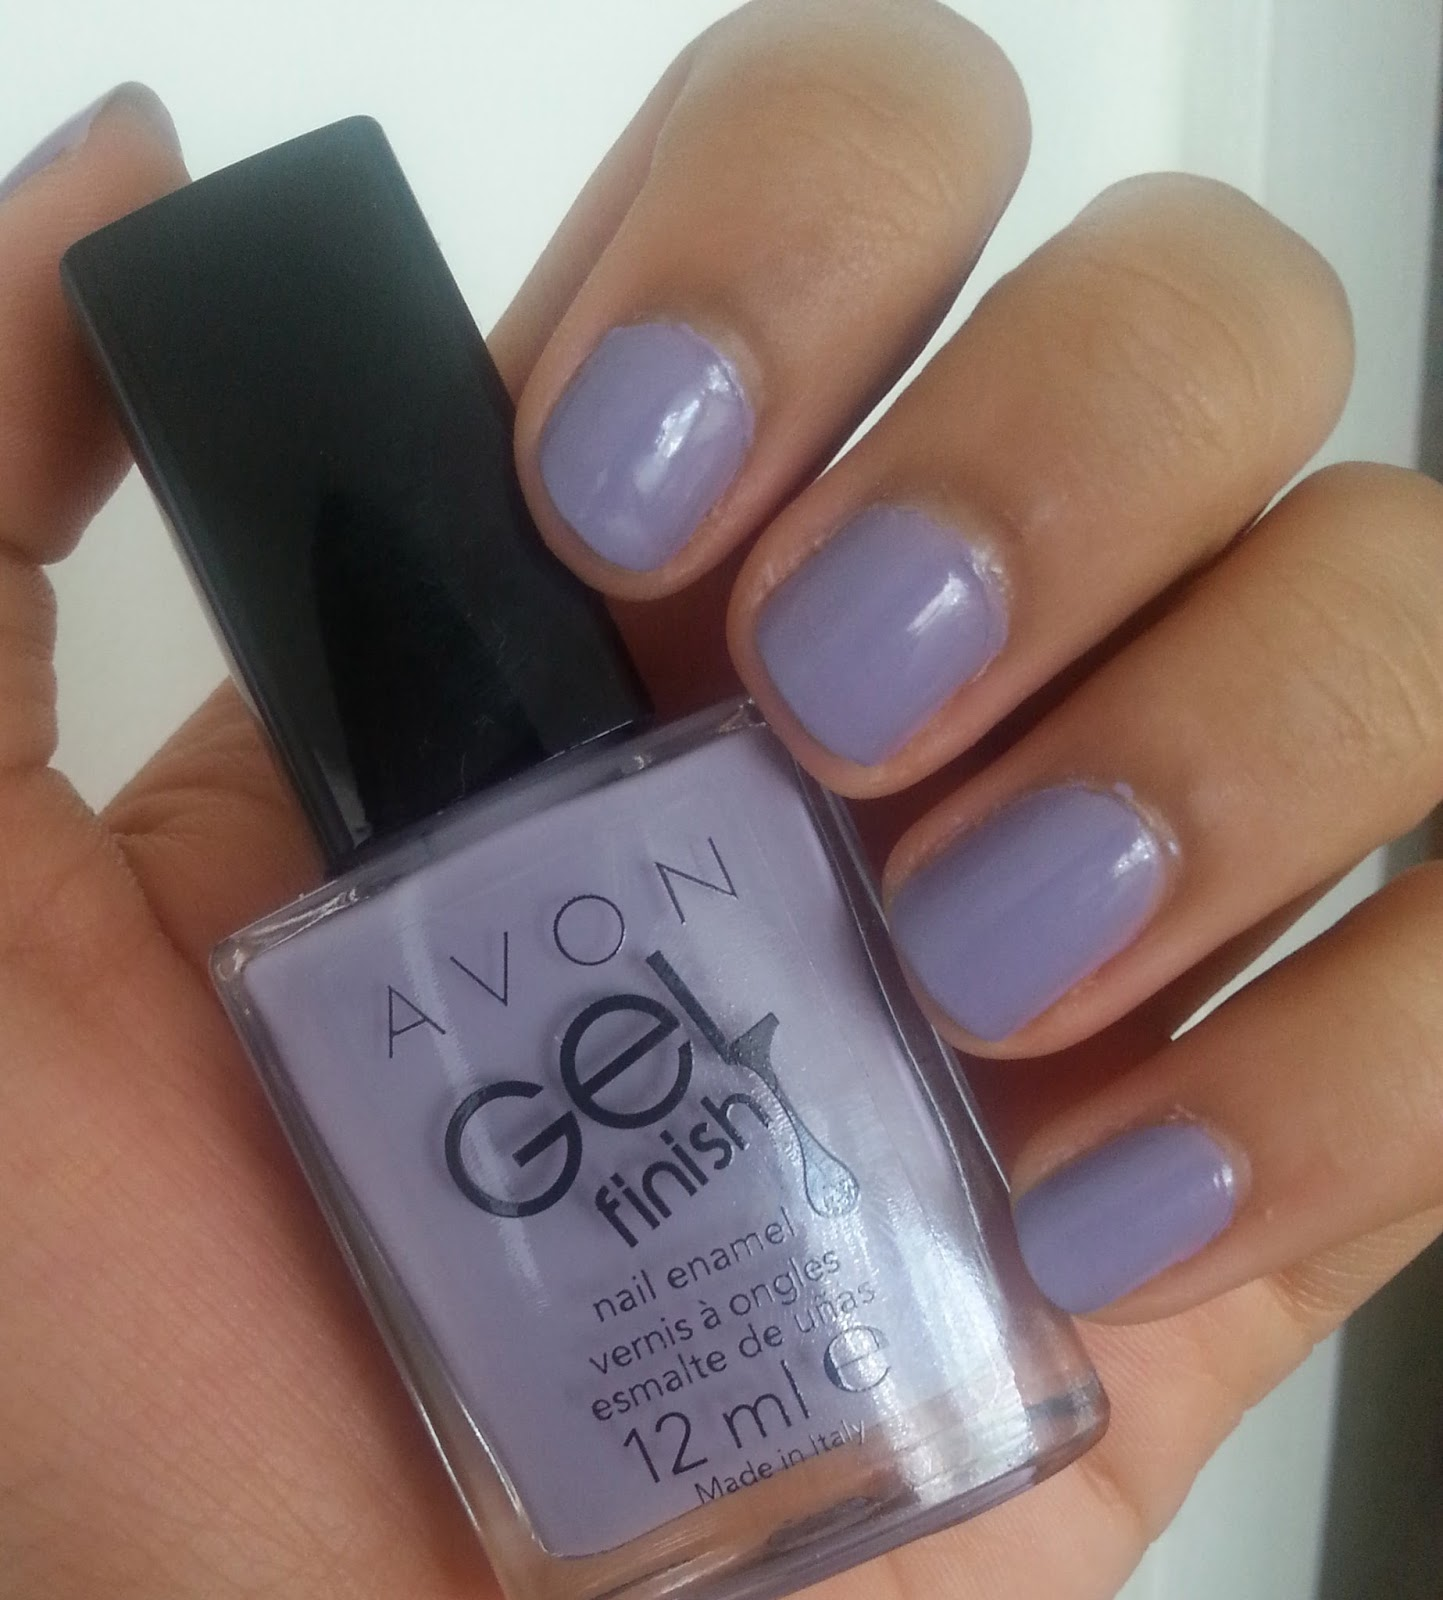 Avon Gel Finish Nail Enamel in Lavender Sky